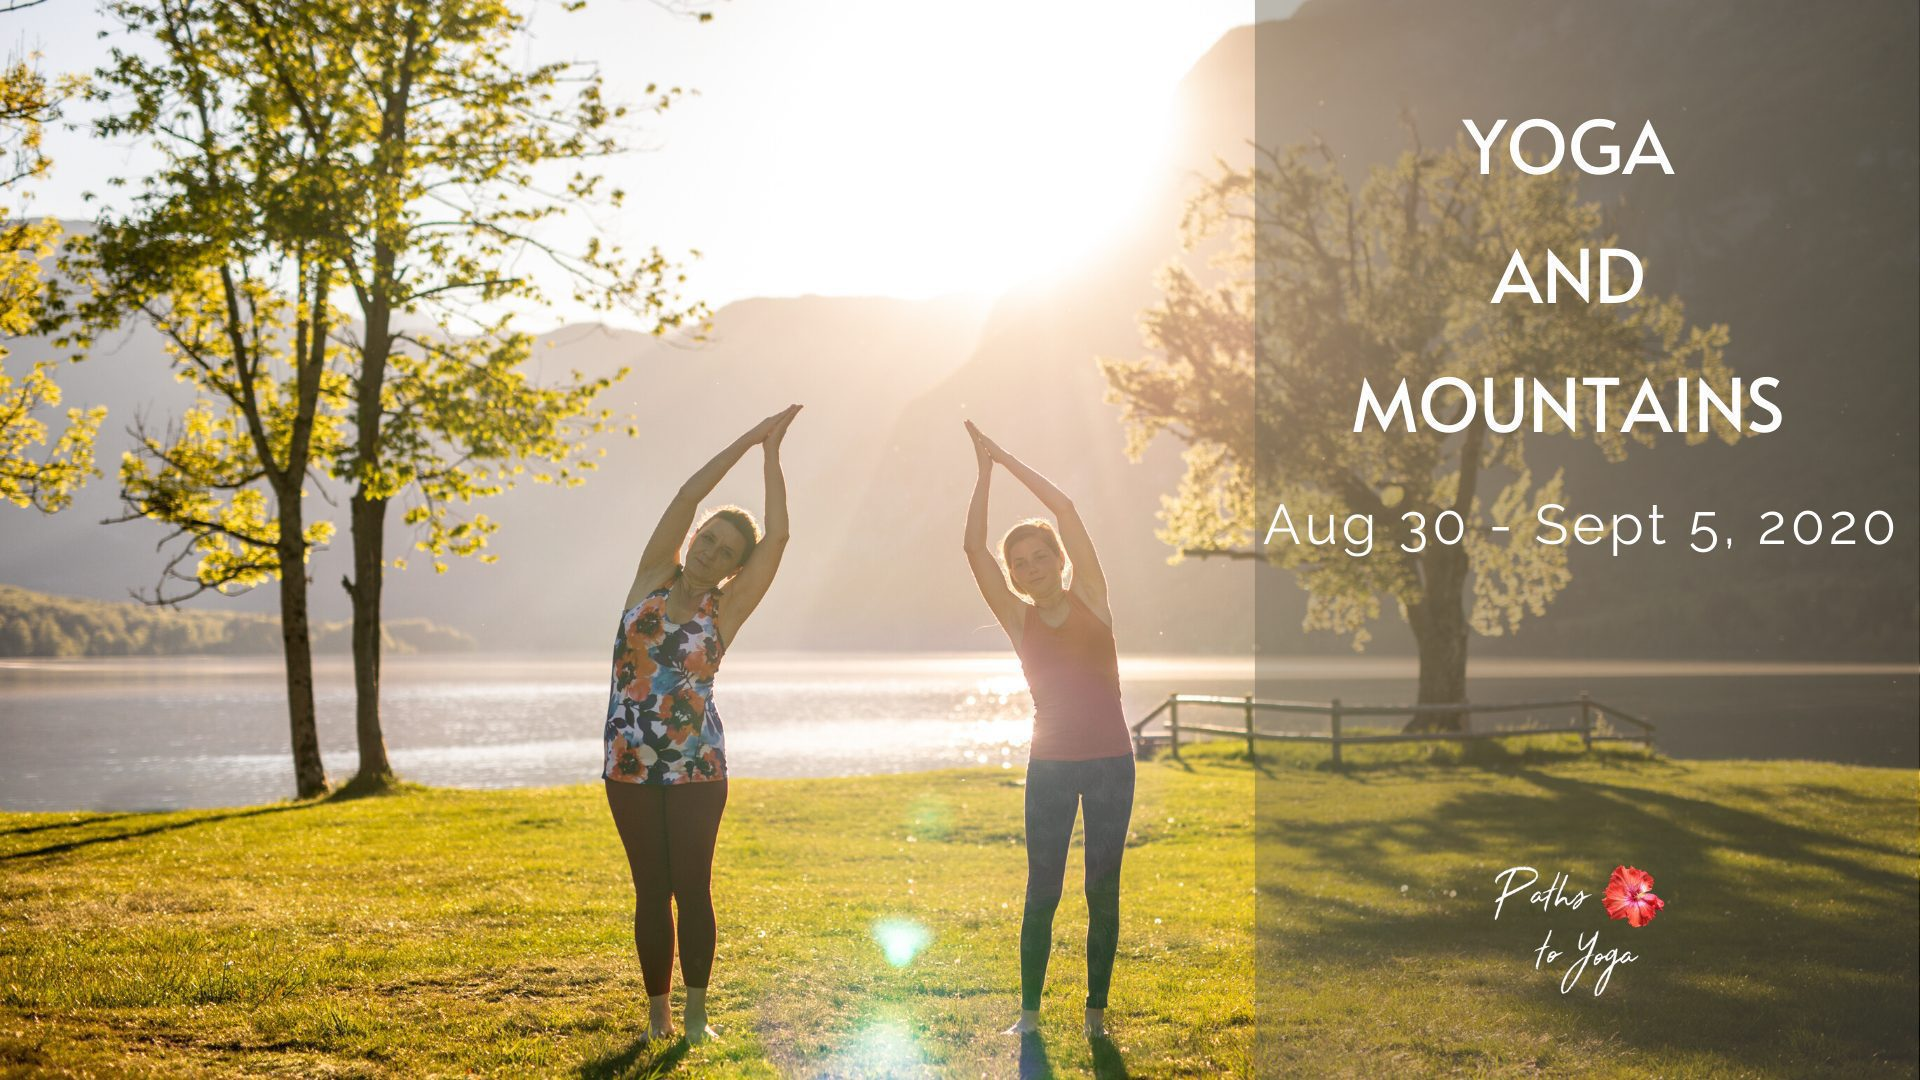 Slovenia Yoga Retreat Summer 2020